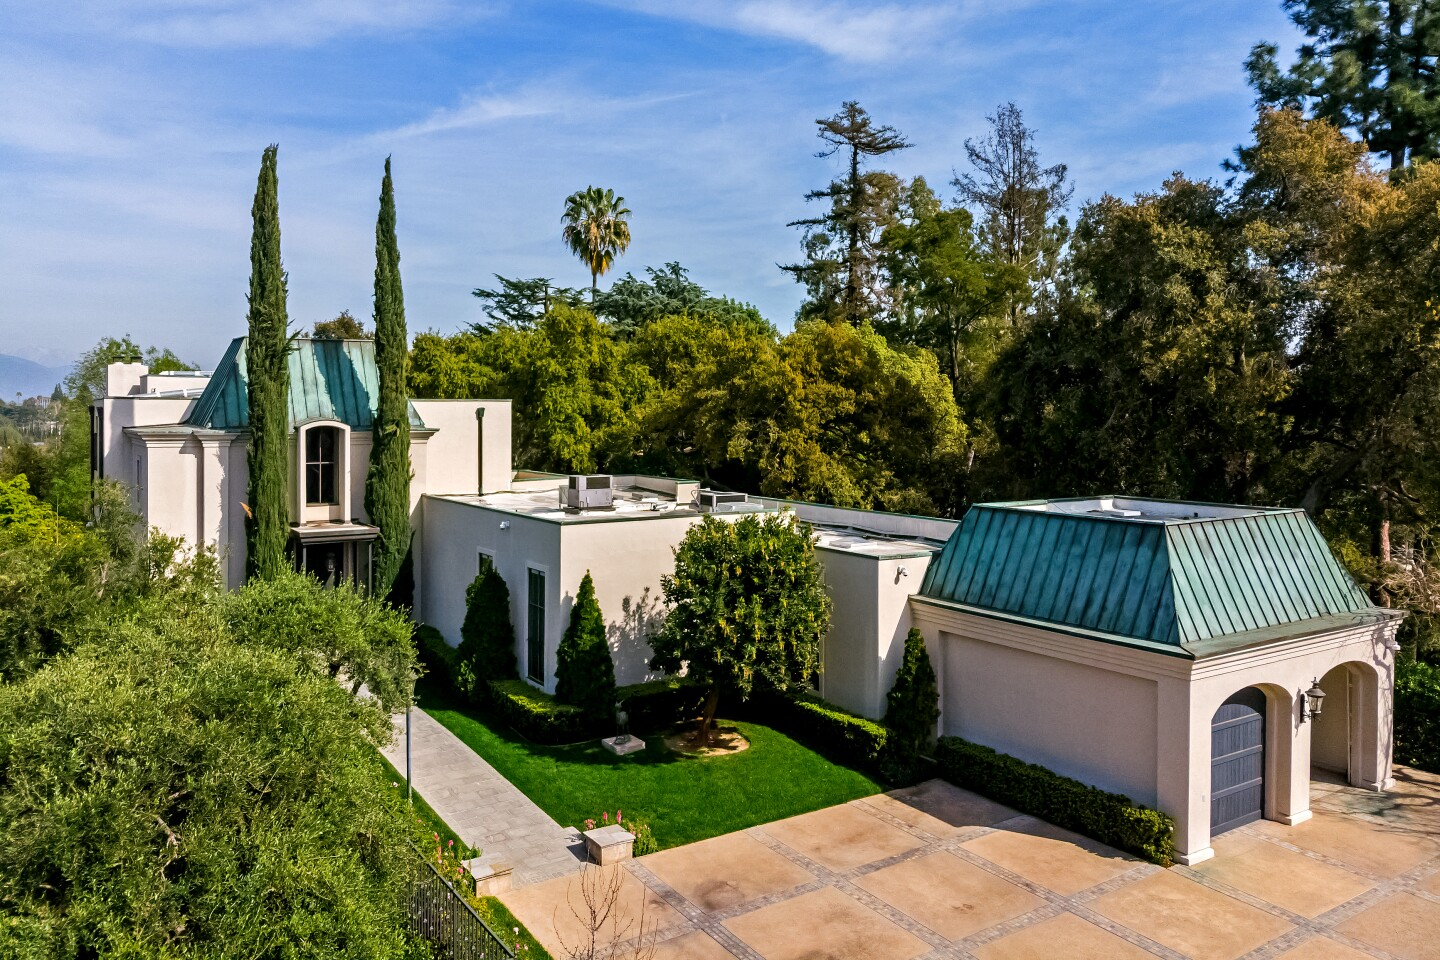 The Italianate villa-style home, designed by architect Bob Ray Offenhauser, sits on a roughly one-acre crest that overlooks the Arroyo Seco river-bed. Listed for $6.58 million, the residence opens to a two-story entry hall with high ceilings that rise to meet the mansard-style roof. Original hand-painted wallpaper, inlaid wood floors and picture windows are among features of the three-bedroom, five-bedroom house. Beyond the swimming pool are brick steps leading to a dining patio and formal gardens. Specimen trees are spread throughout the grounds. (Marc Angeles / Unlimited Style Real Estate Photography)